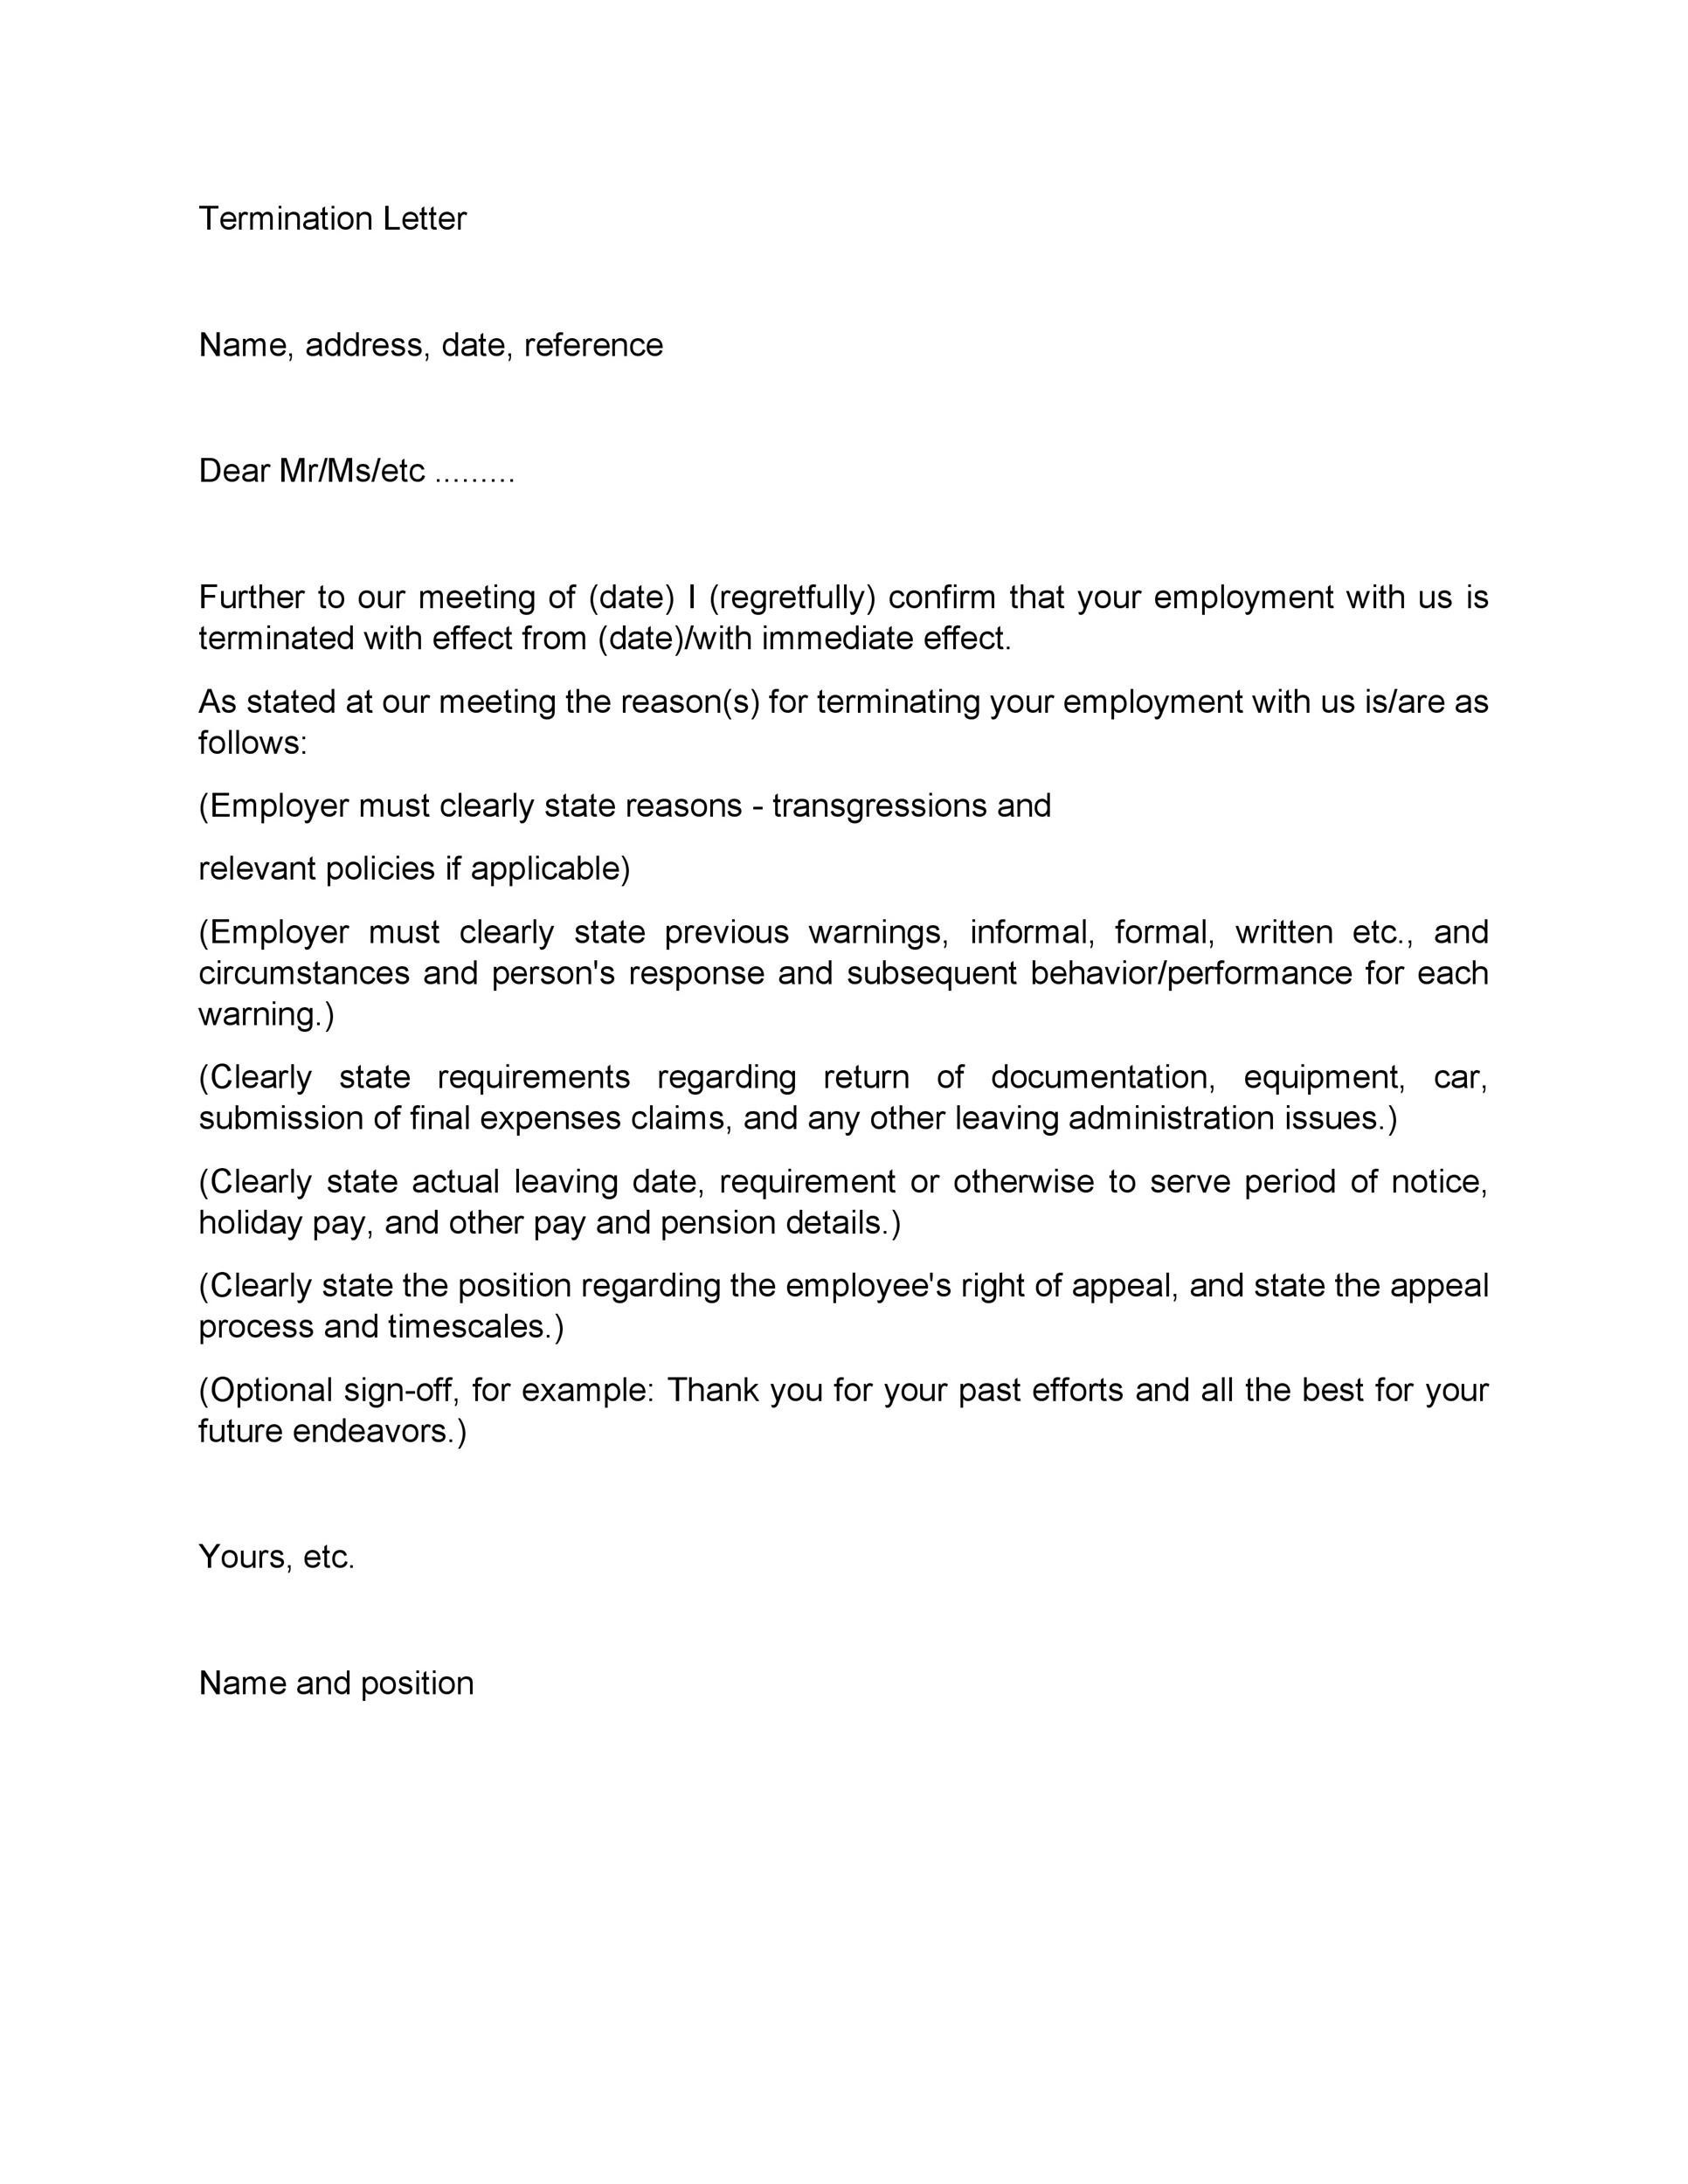 Printable Termination Letter Template 01  How To Write A Termination Letter To An Employee